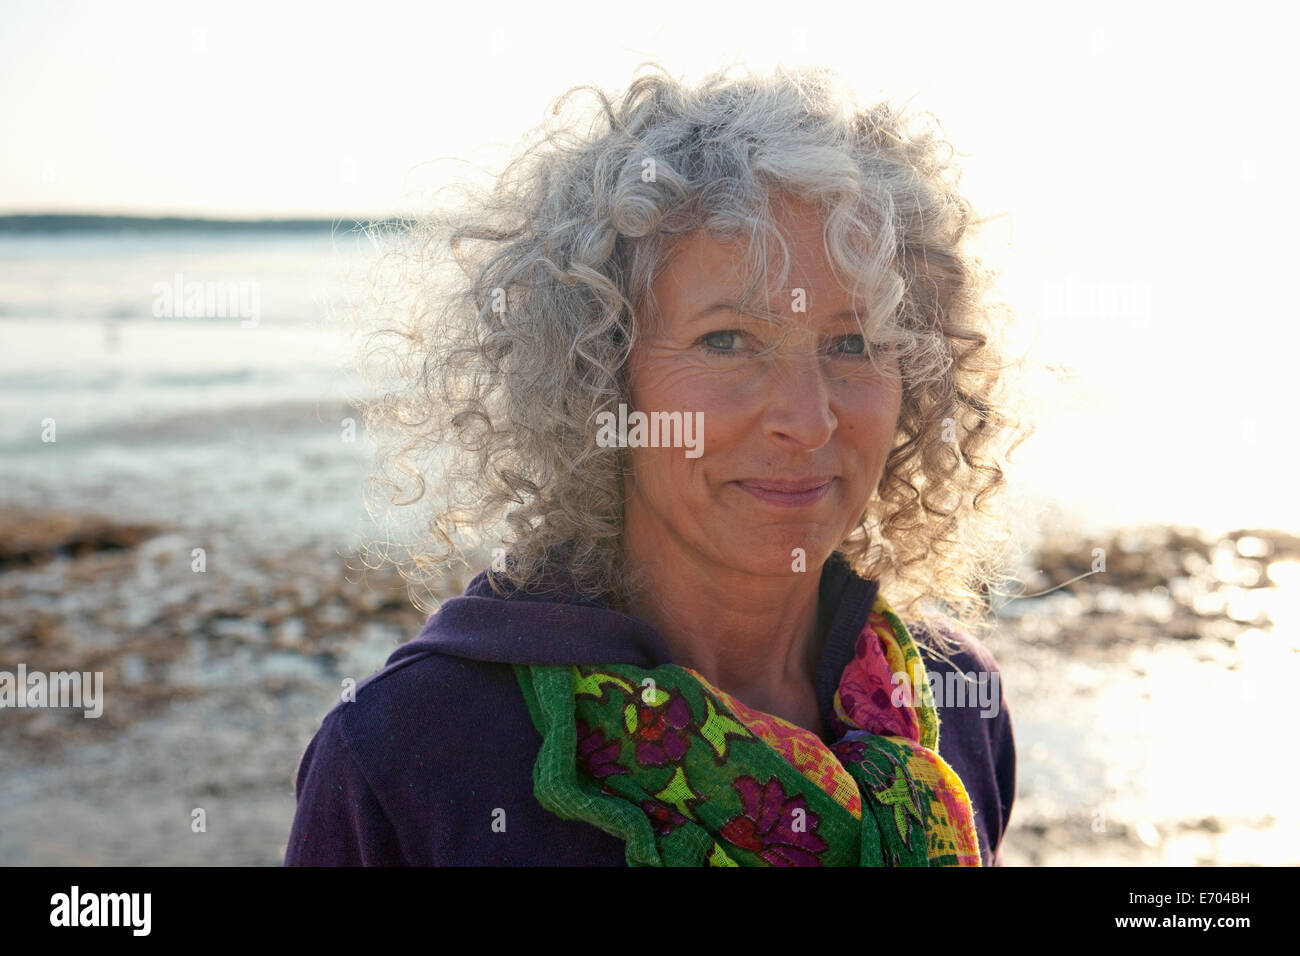 Close up of mature woman by beach Stock Photo